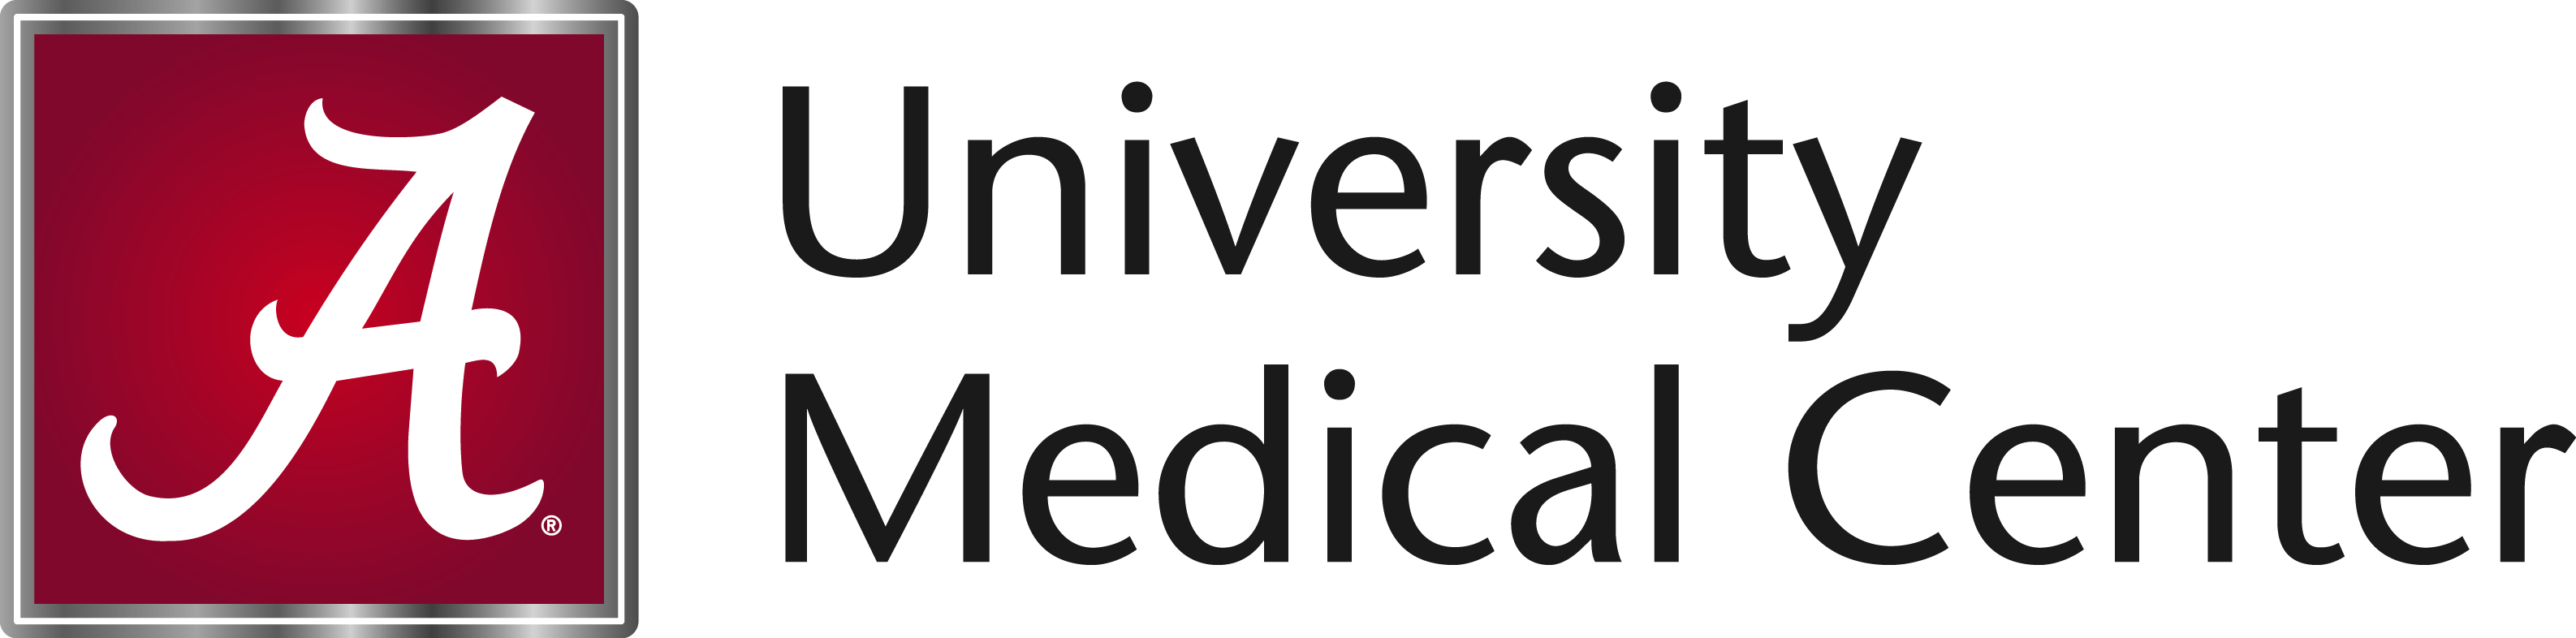 University Medical Center - Crimson Sponsor